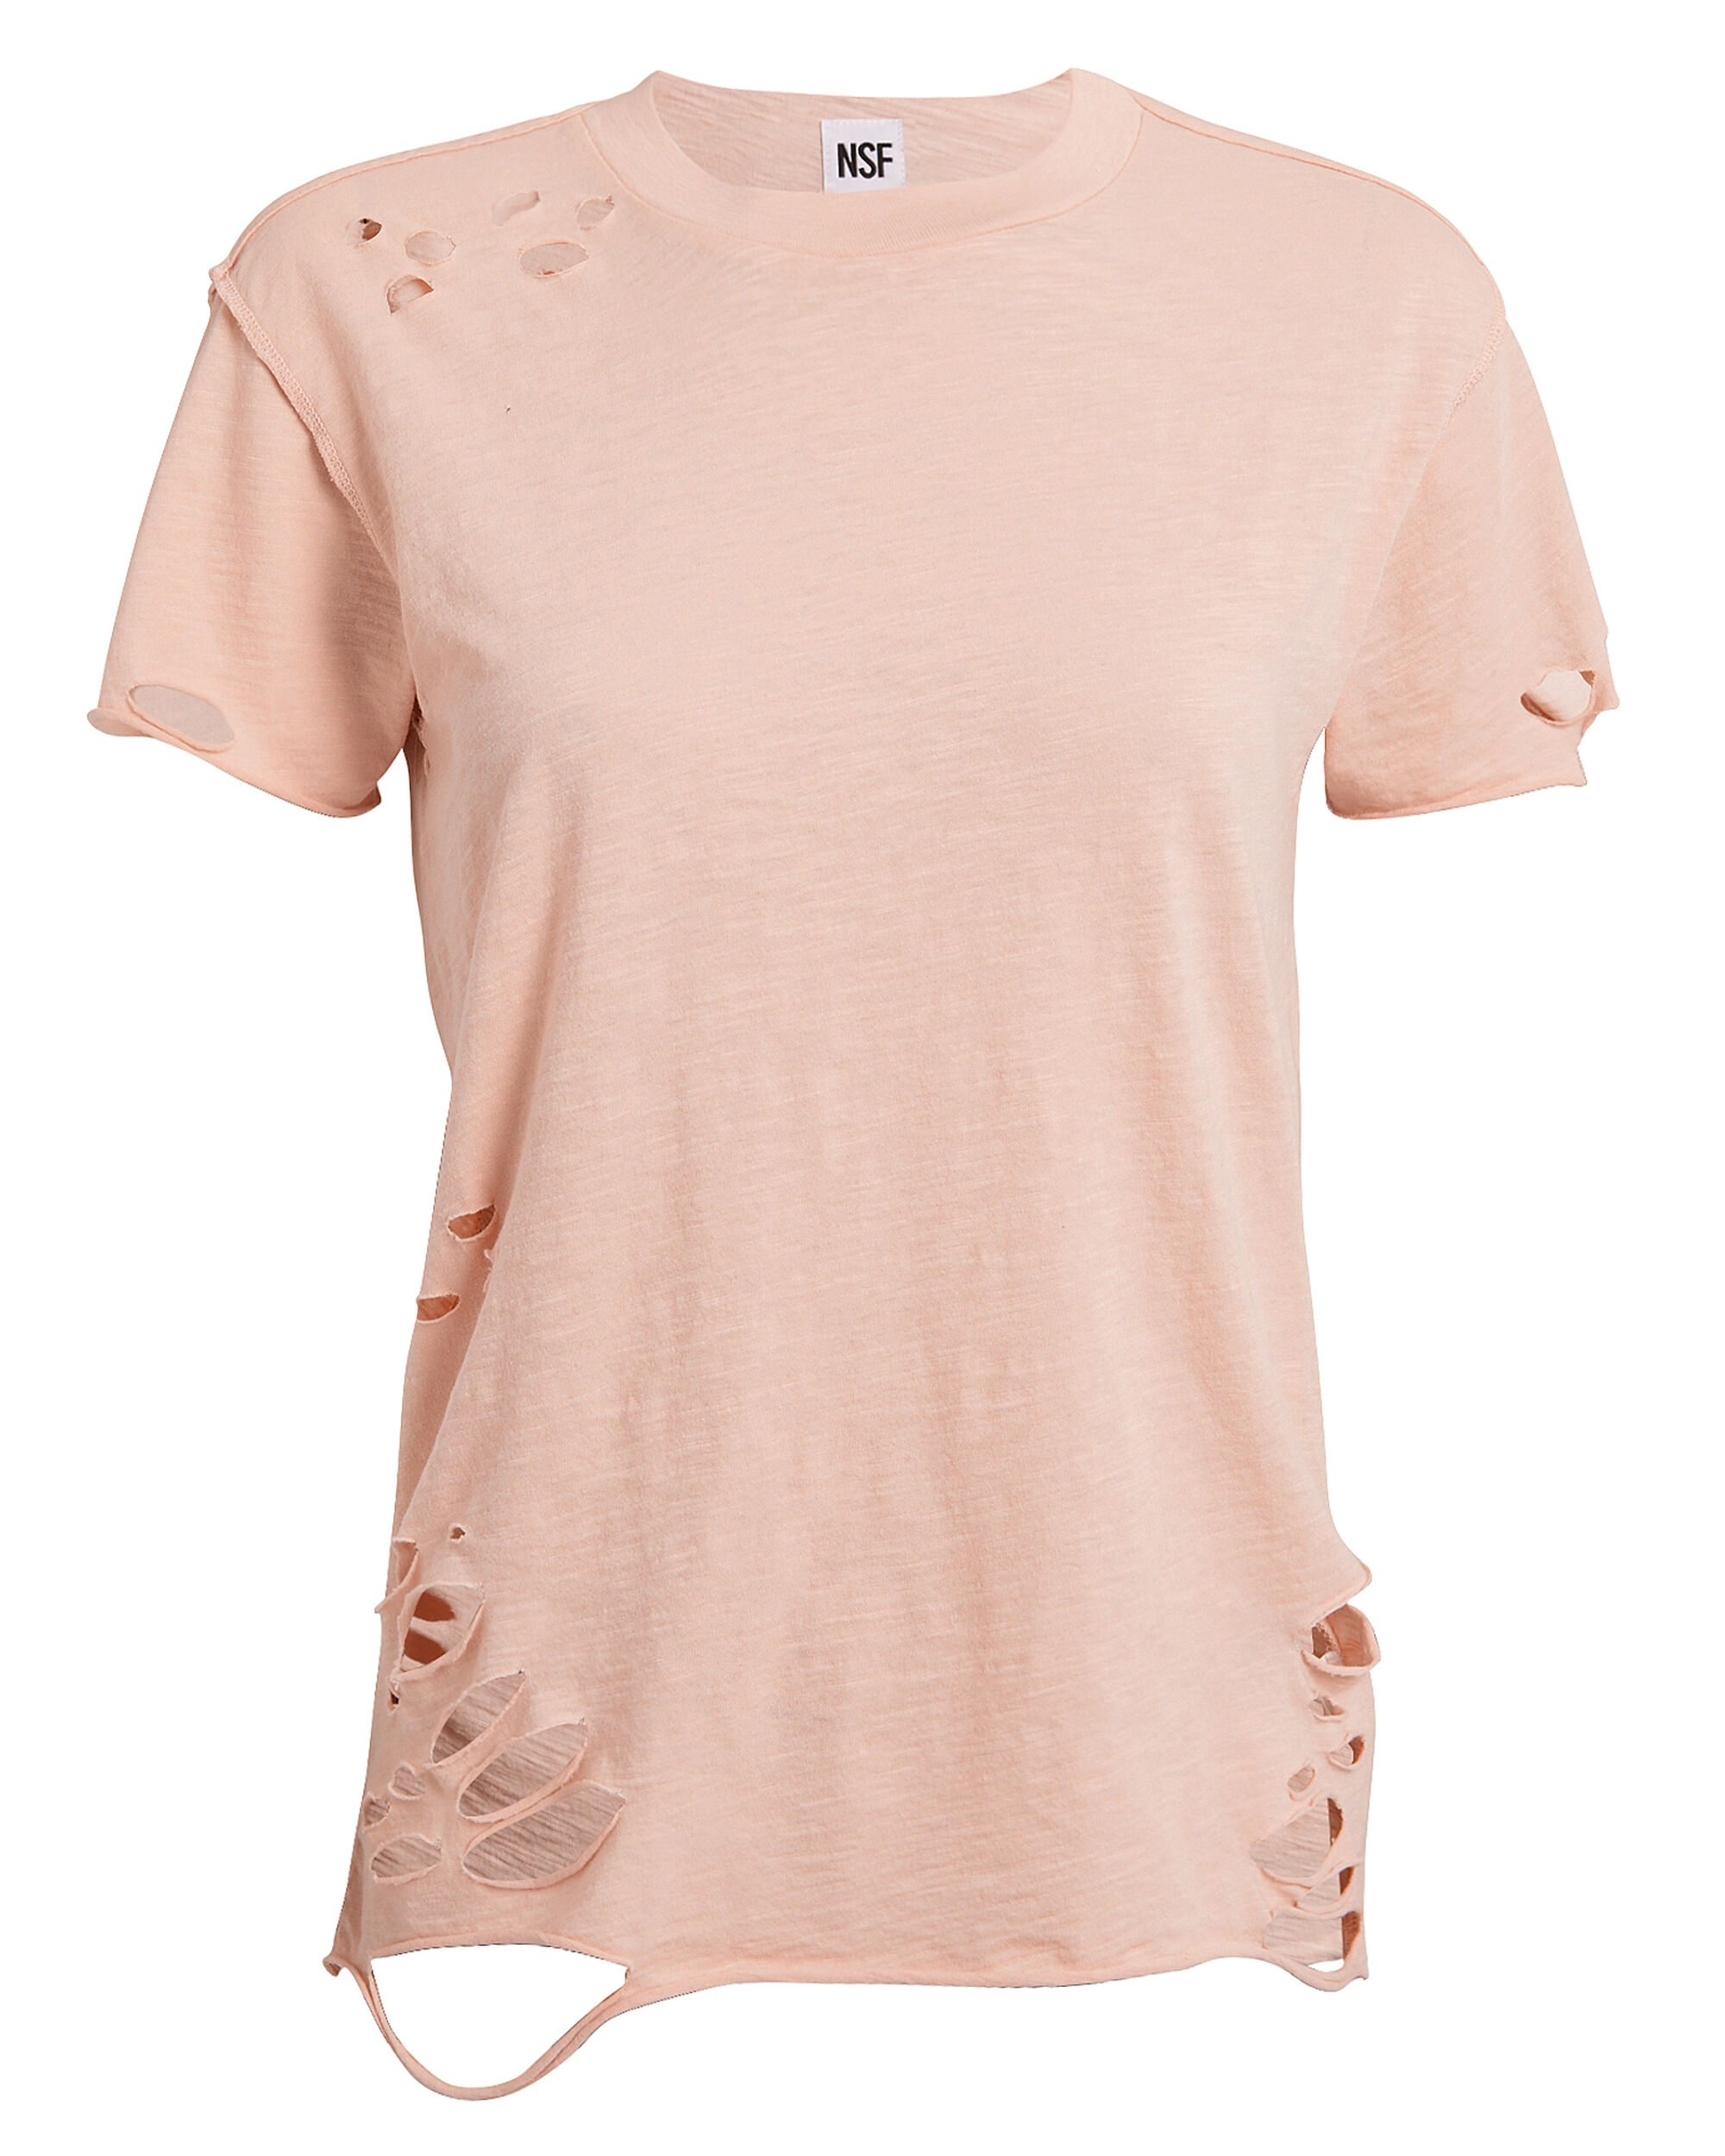 Moore Distressed T-Shirt, LIGHT PINK, hi-res